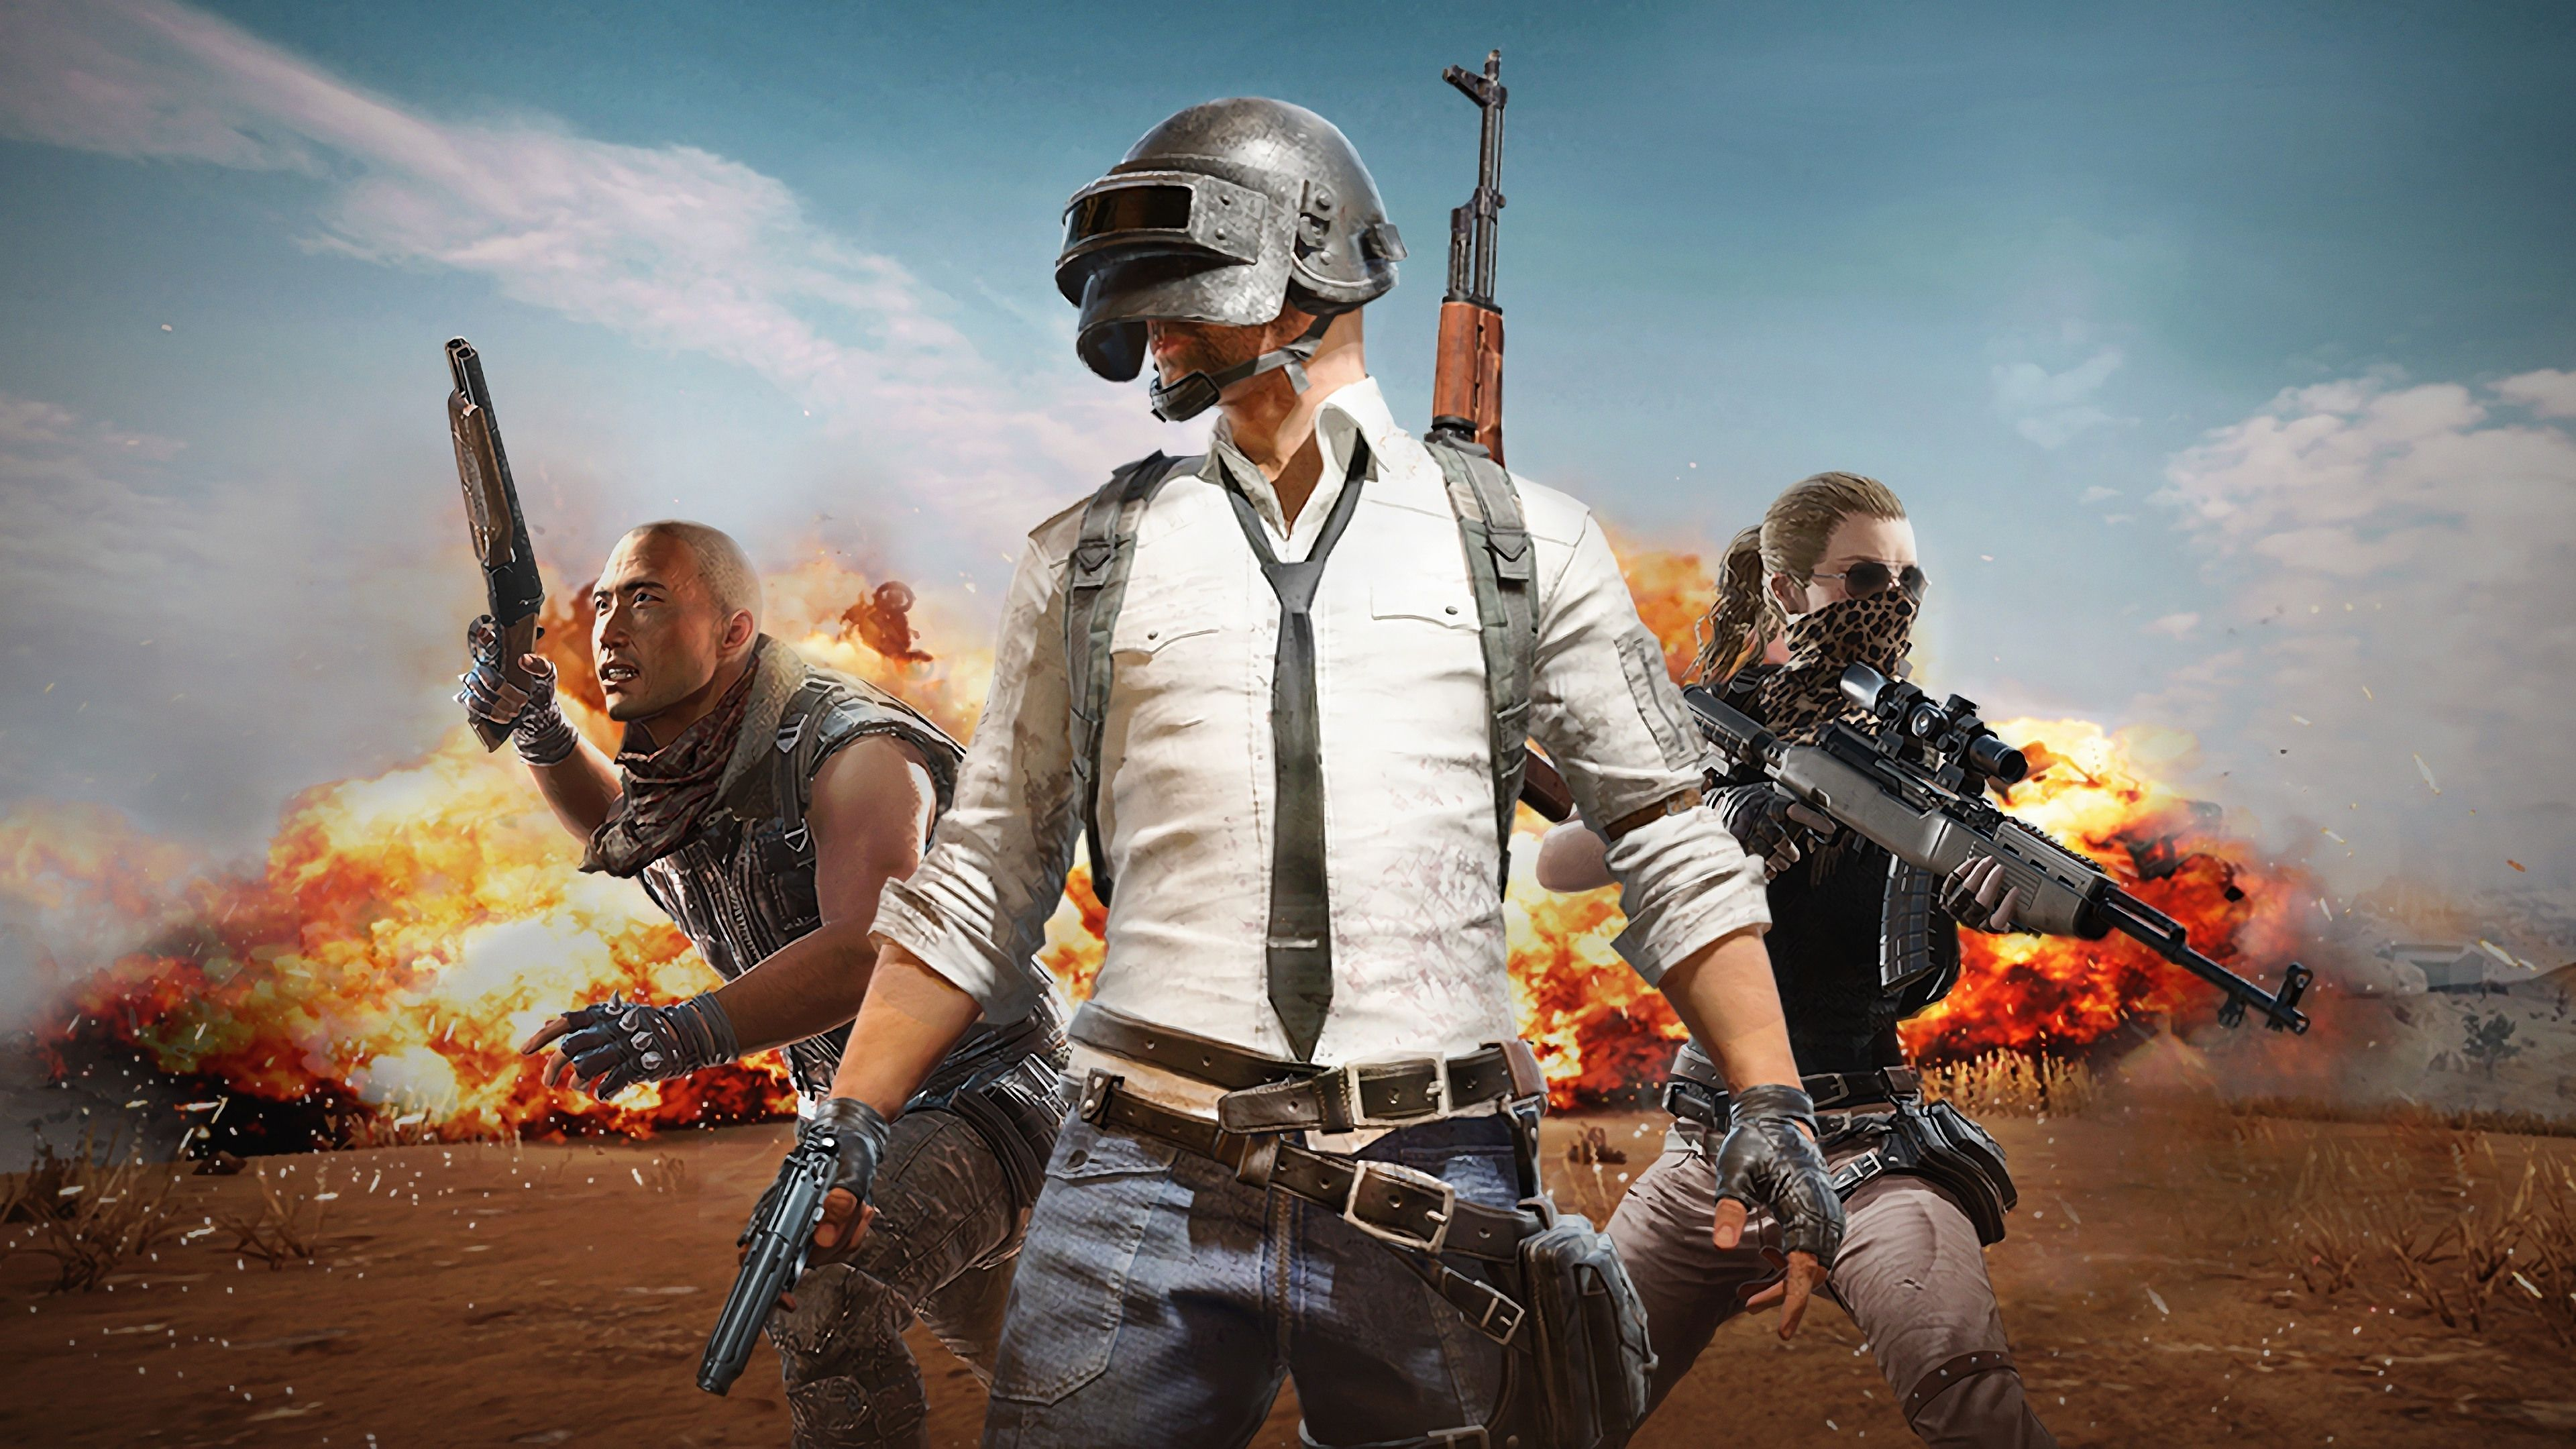 Pubg Wallpapers Hd 4k: Pubg 4k Game Art Pubg Wallpapers, Playerunknowns